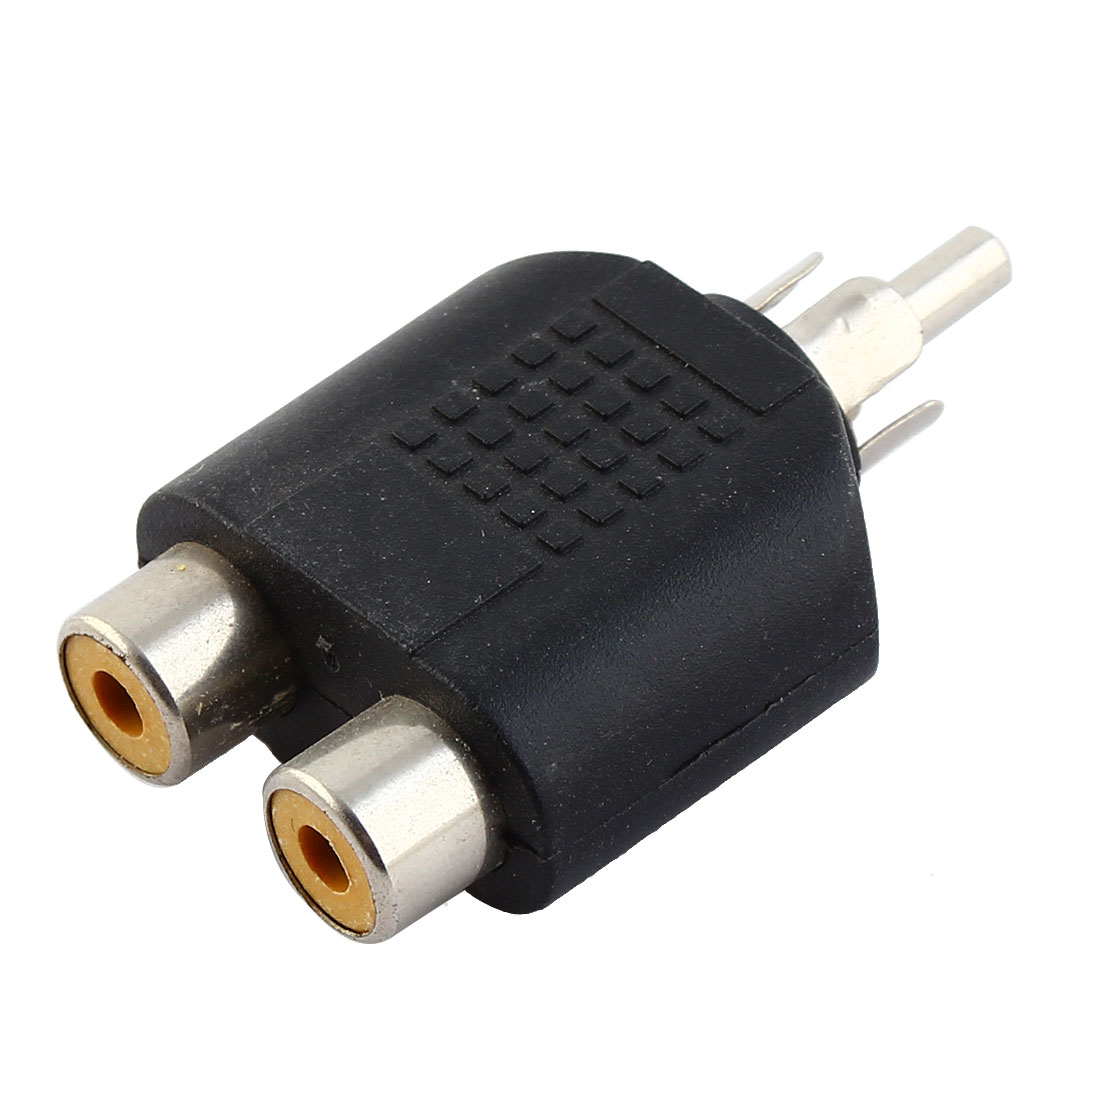 1 Male to 2 Female RCA Phono Audio Splitter Connector Adapter